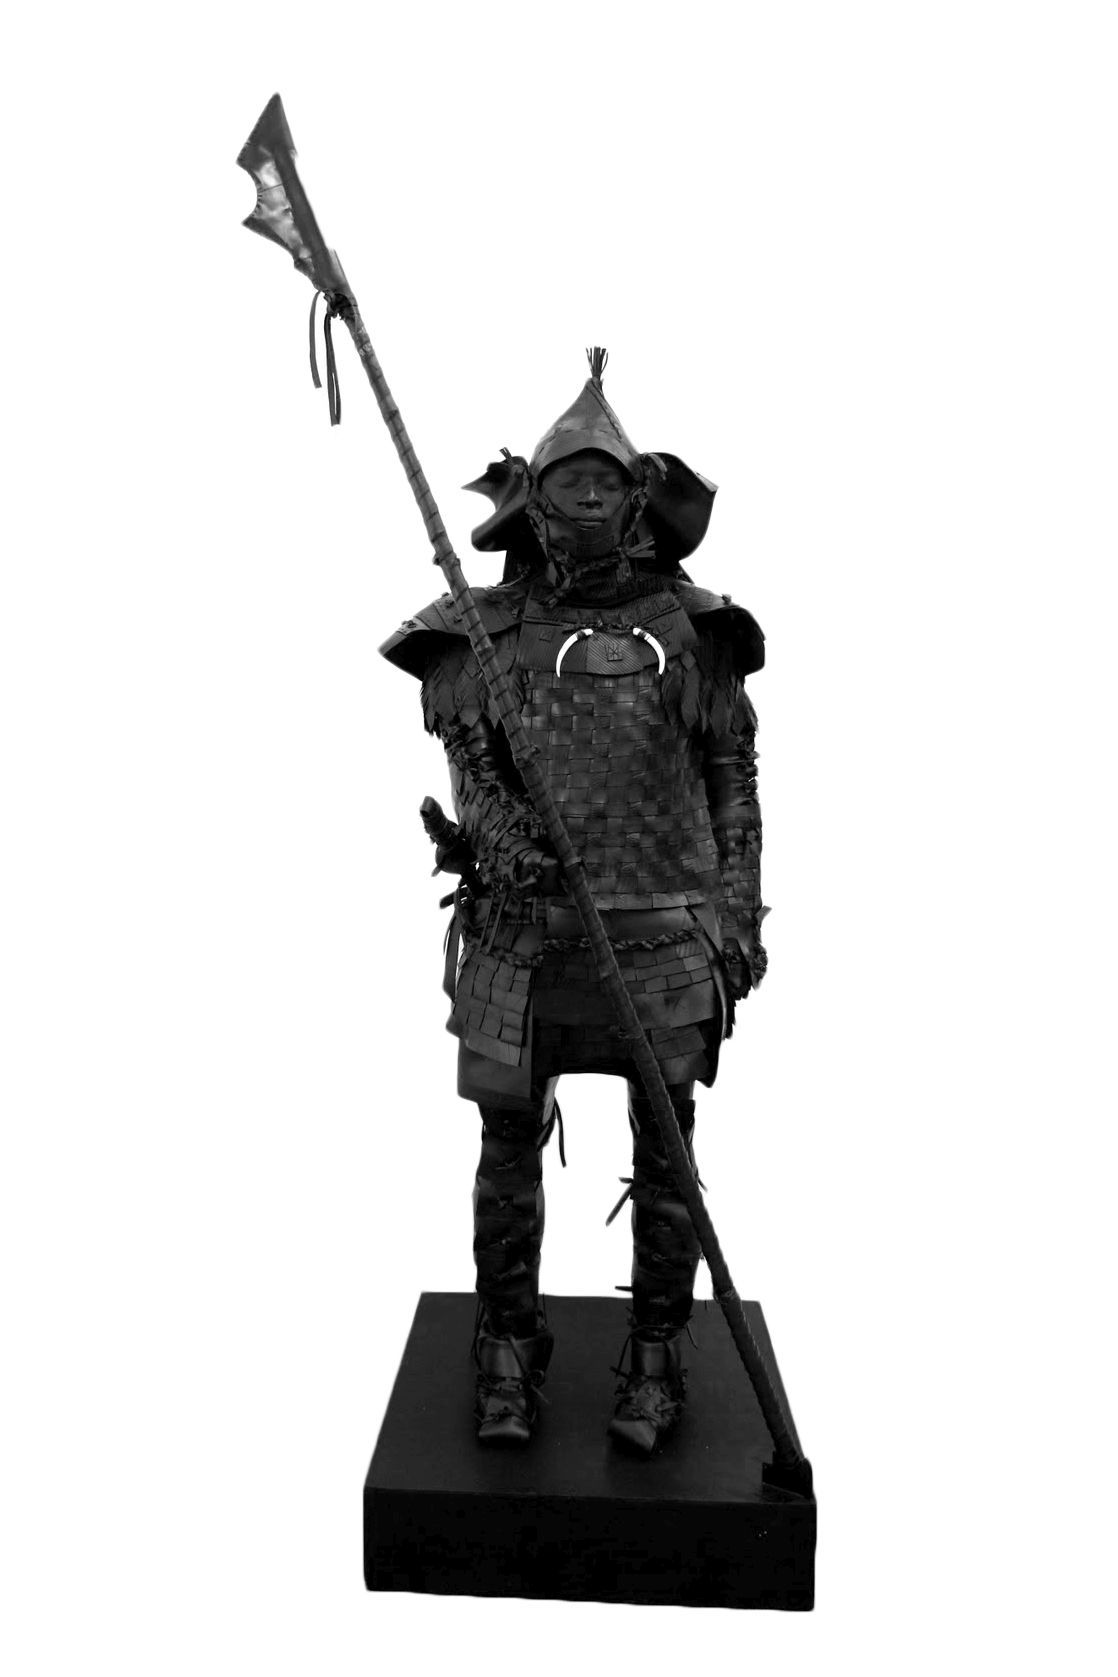 An interpretation of Yasuke, a samurai of black African descent, wearing a woven breastplate decorated with two animal fangs and holding a long spear.